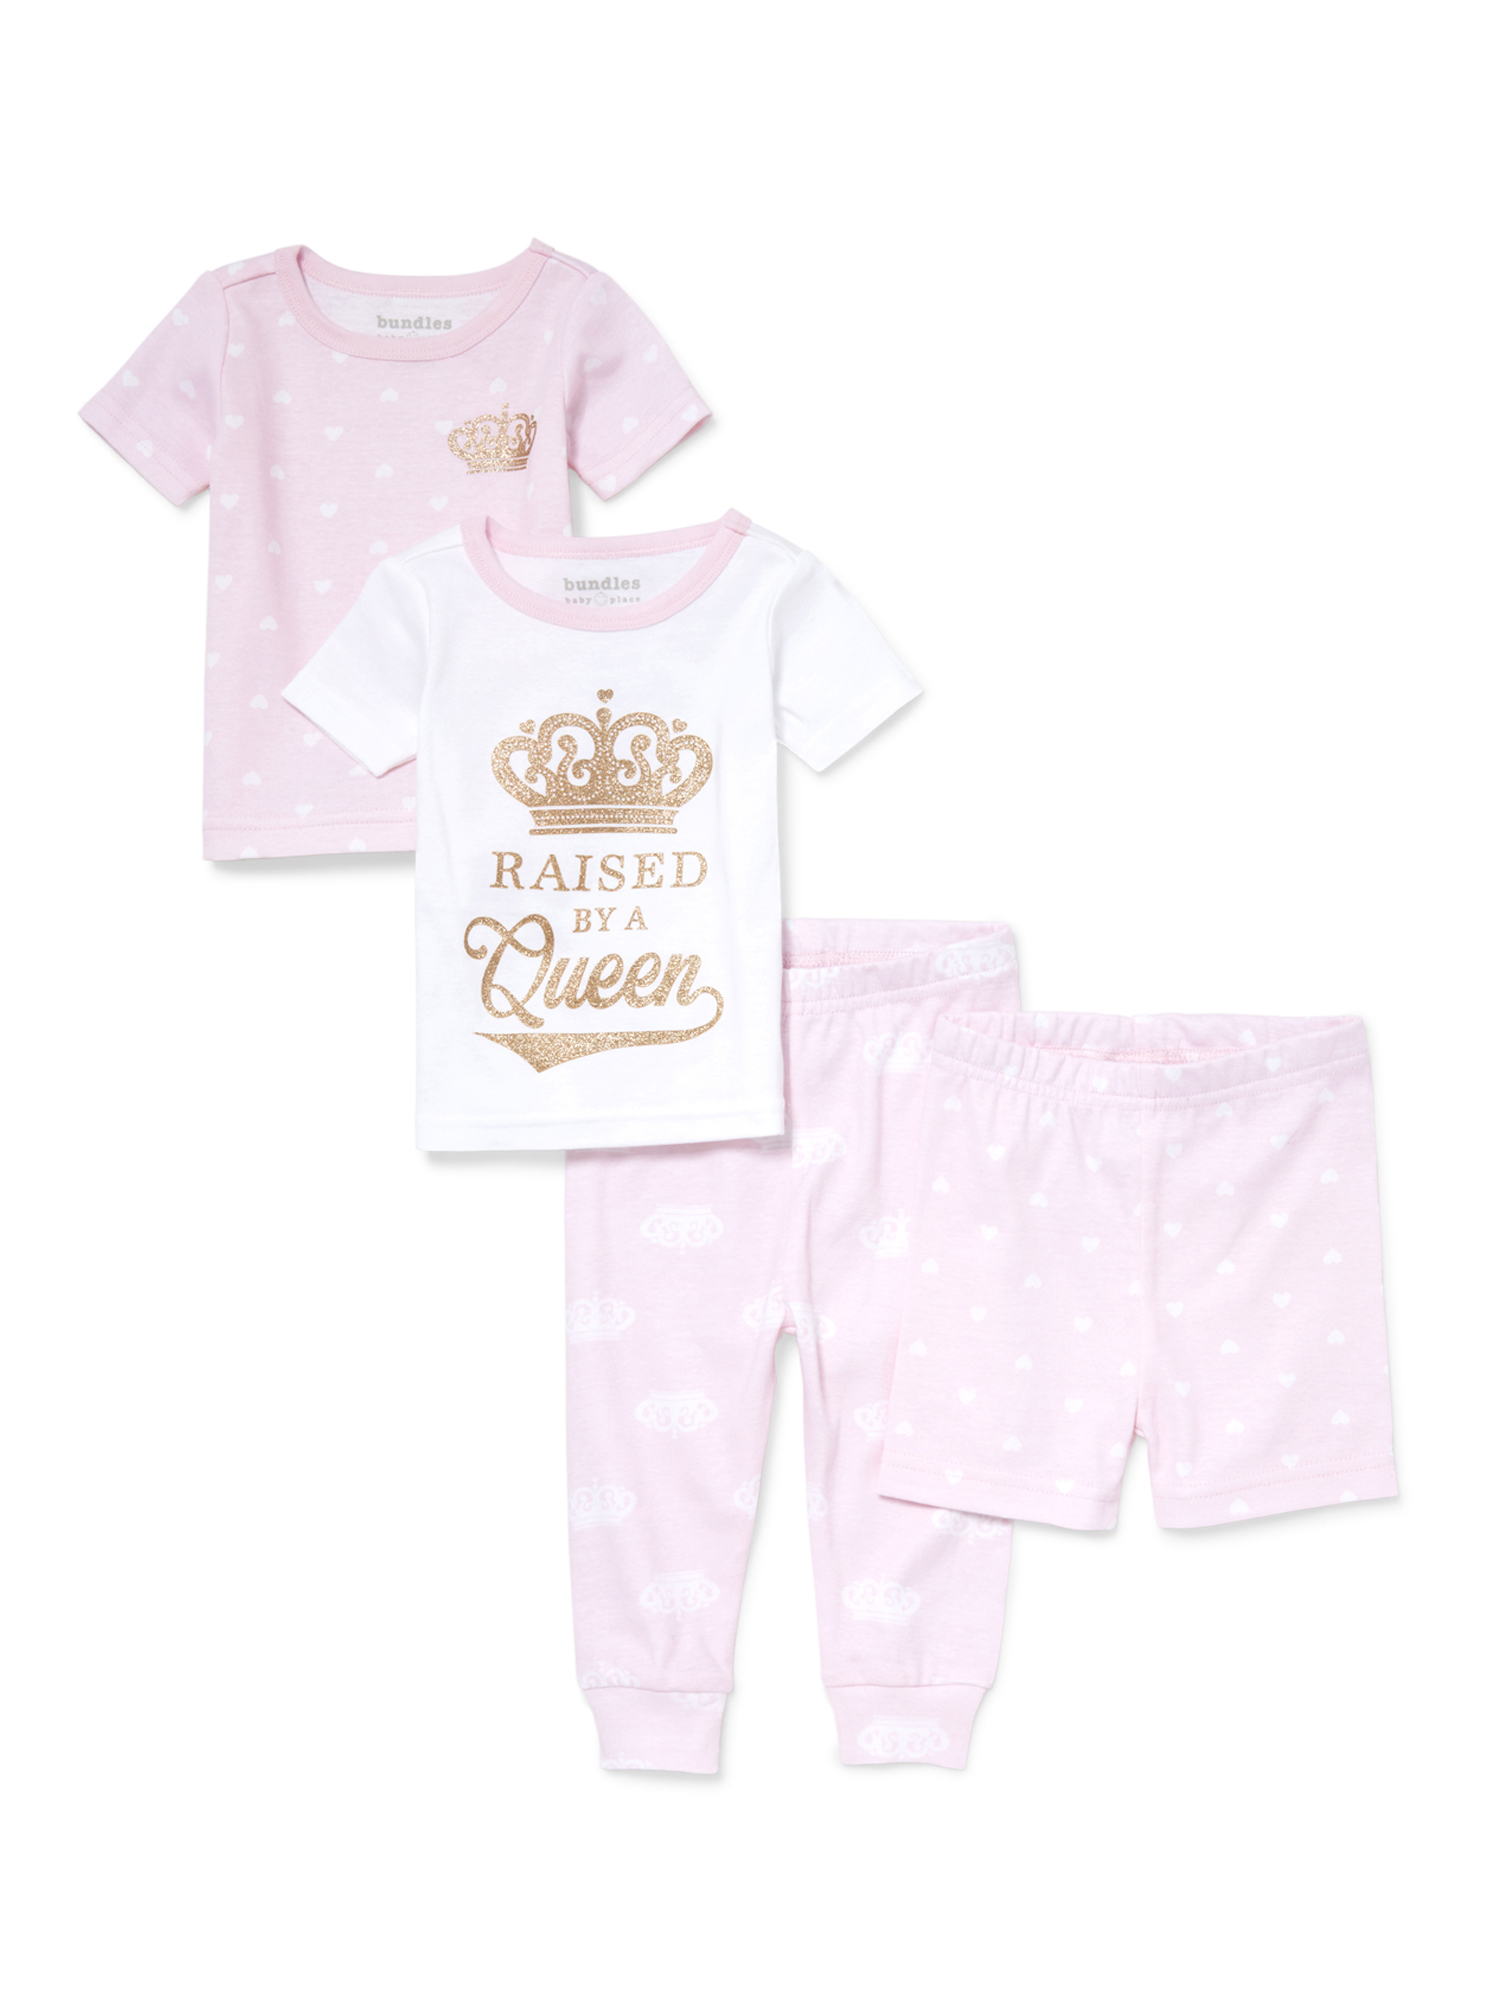 Baby And Toddler Girls 'Raised by A Queen' Crown And Heart Printed 4-Piece Snug-Fit PJ Set (Baby and Toddler Girls)